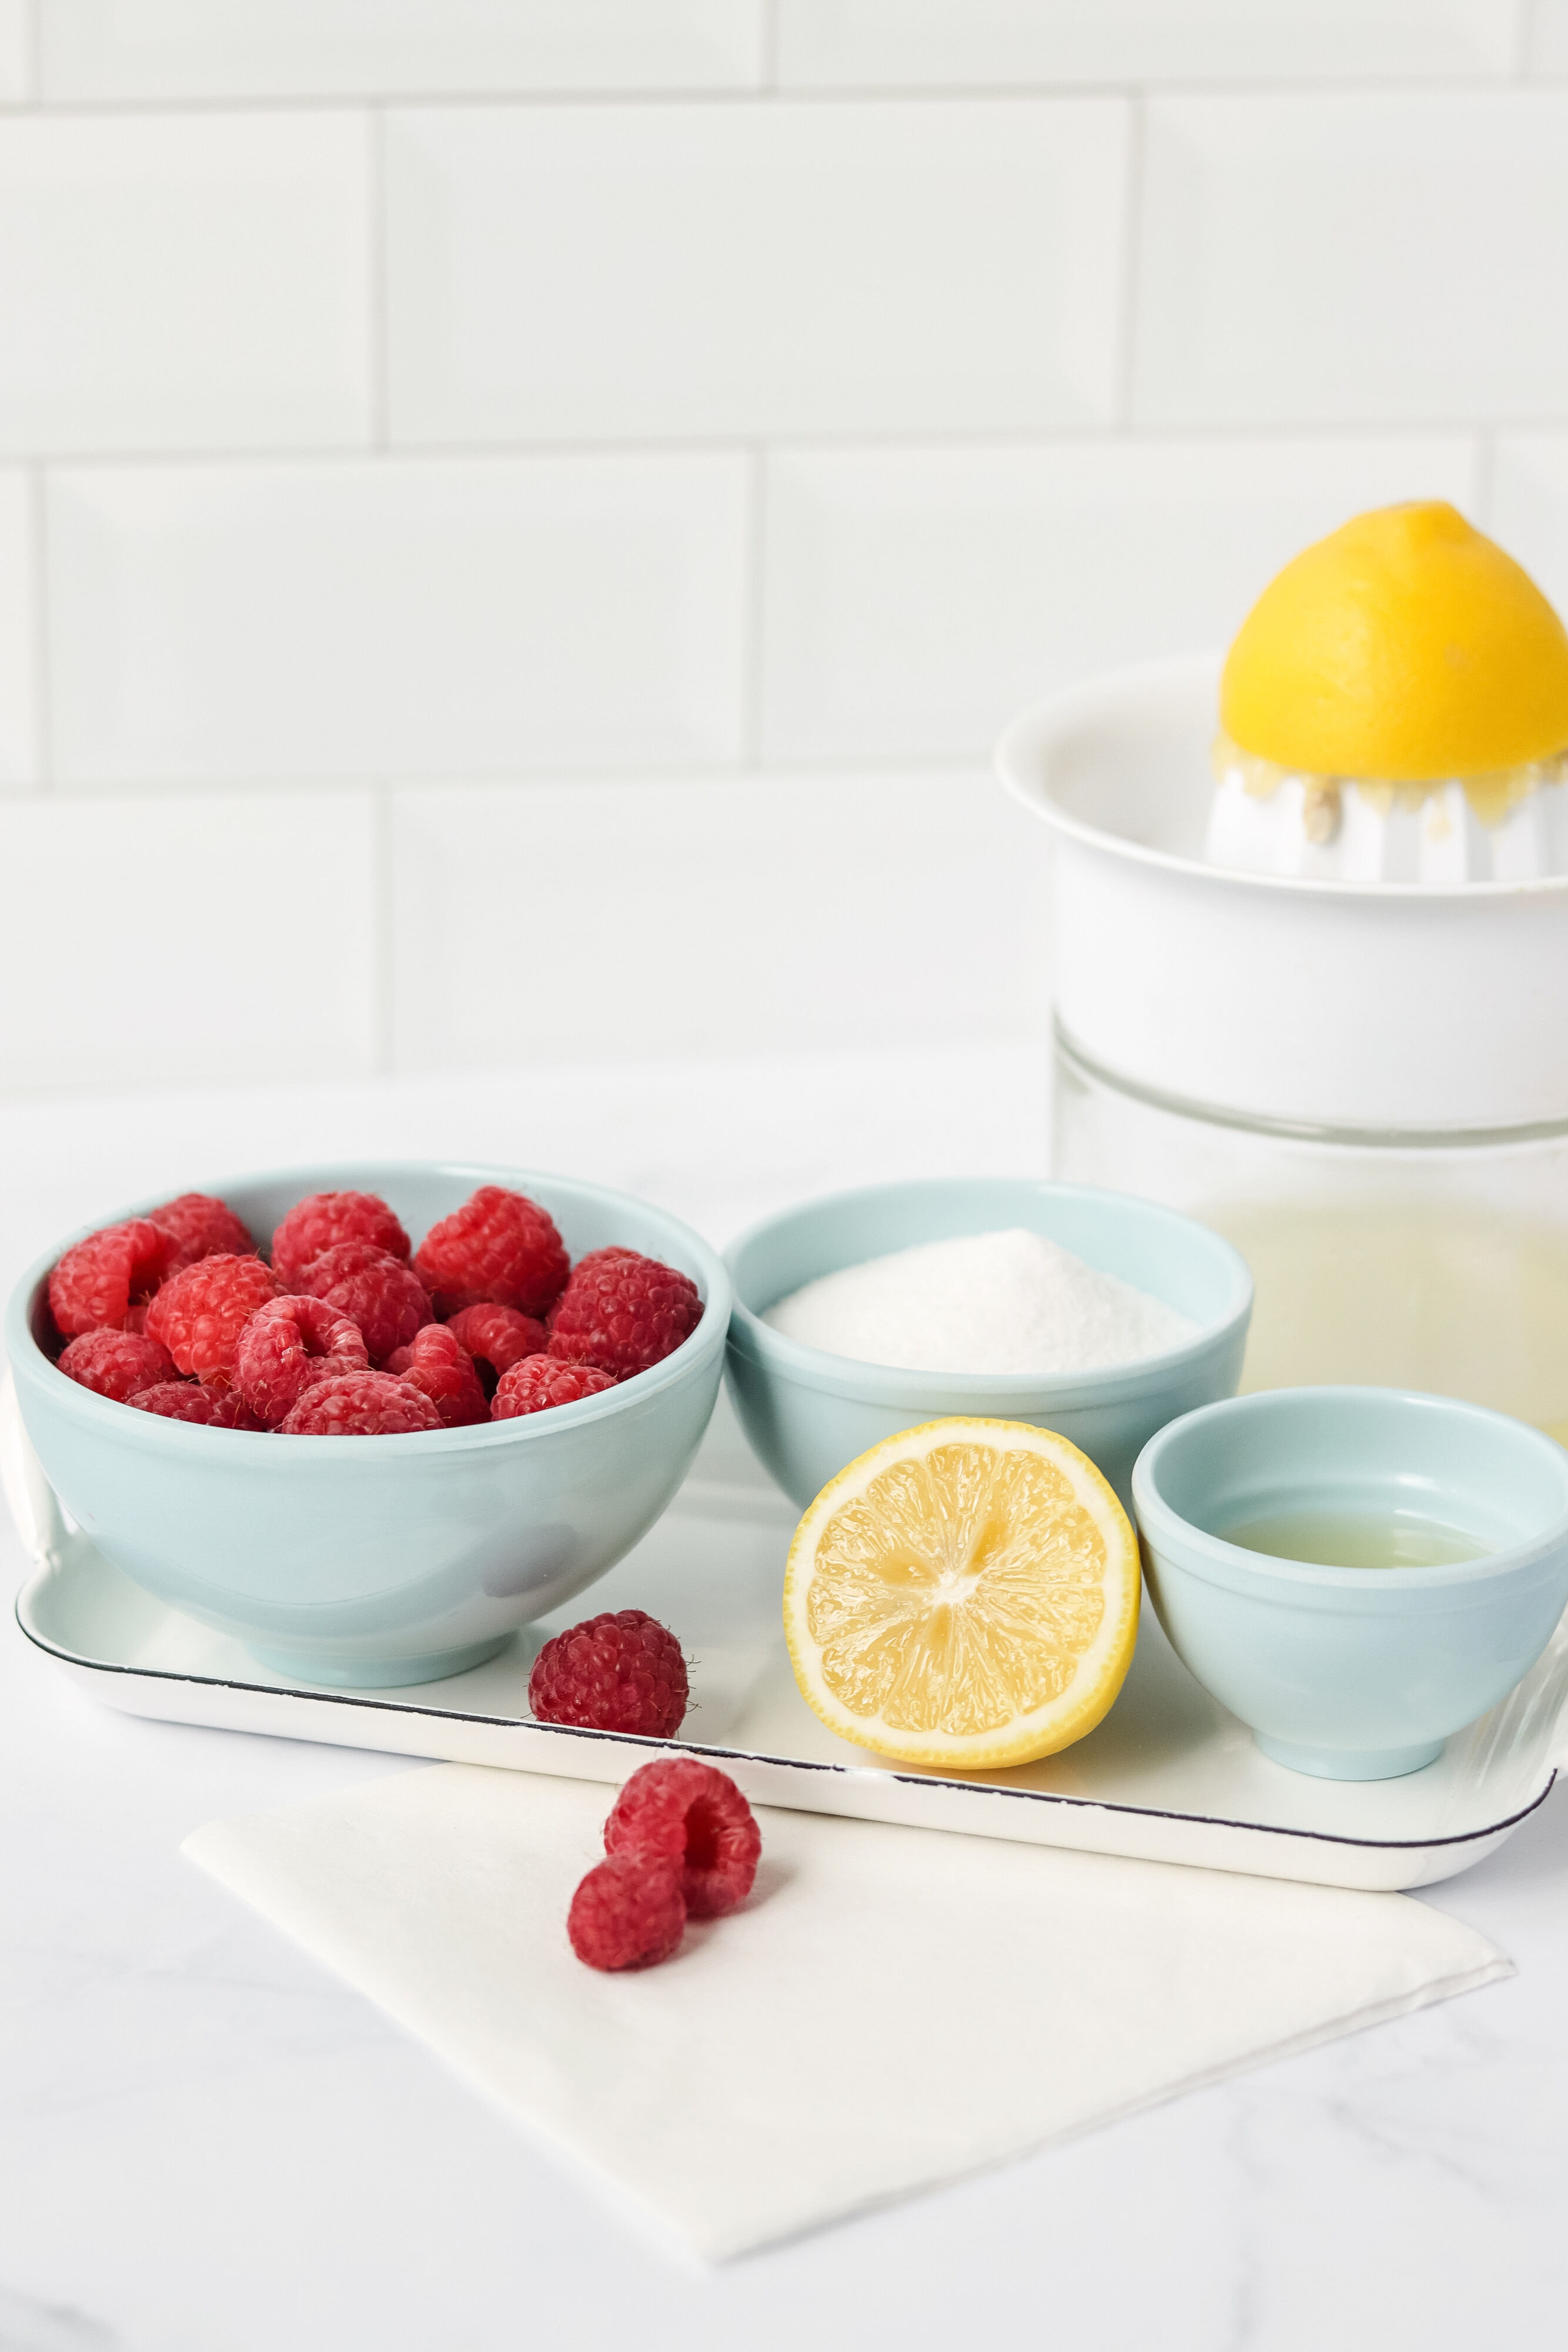 Homemade raspberry sorbet ingredients